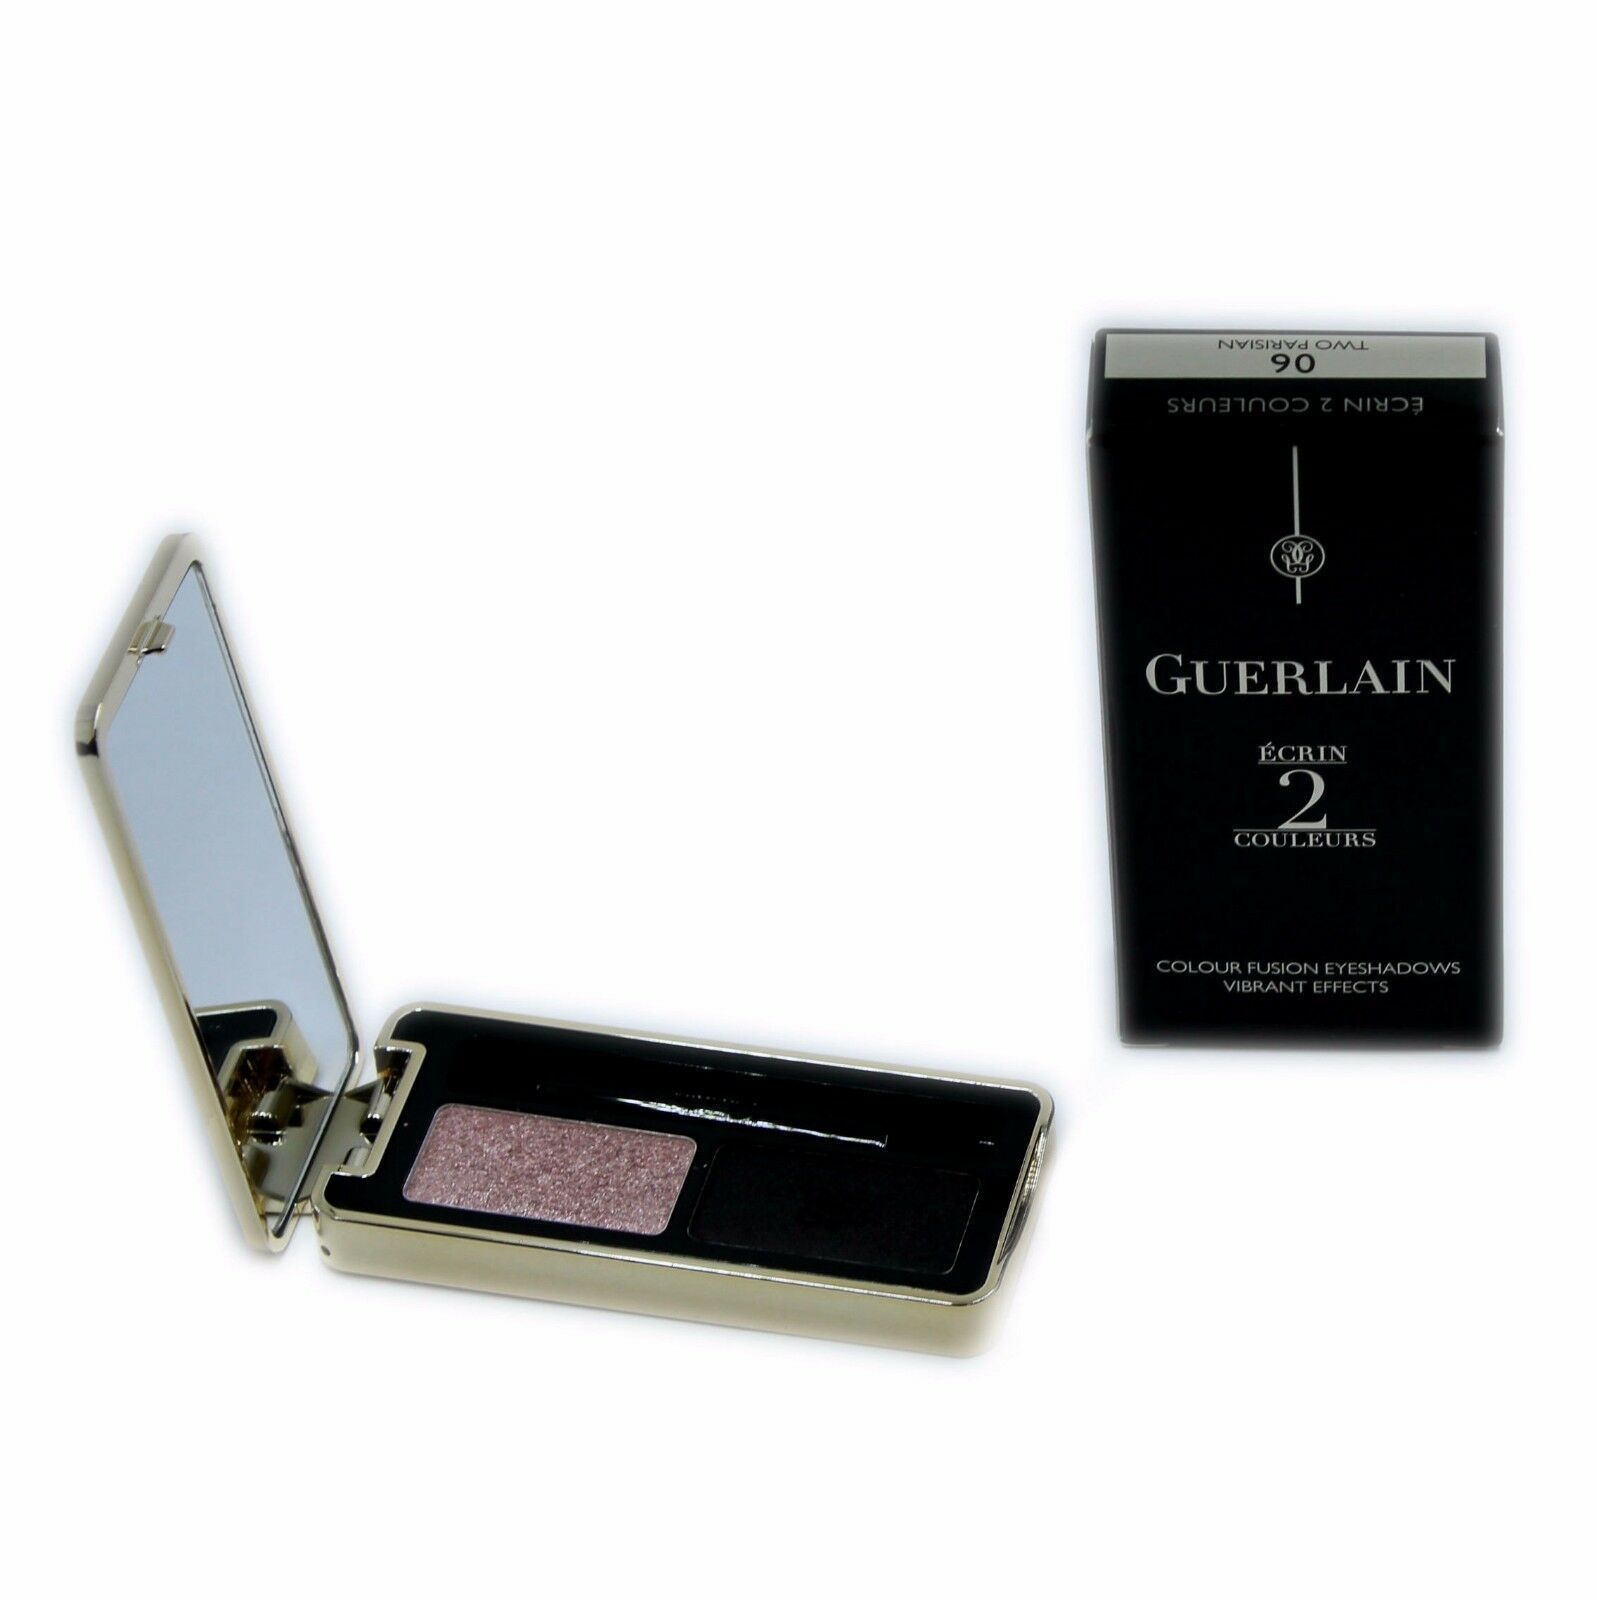 Primary image for GUERLAIN ECRIN 2 COULEURS COLOUR FUSION EYESHADOWS EFFETS VIBRANTS 4G #06-G41392